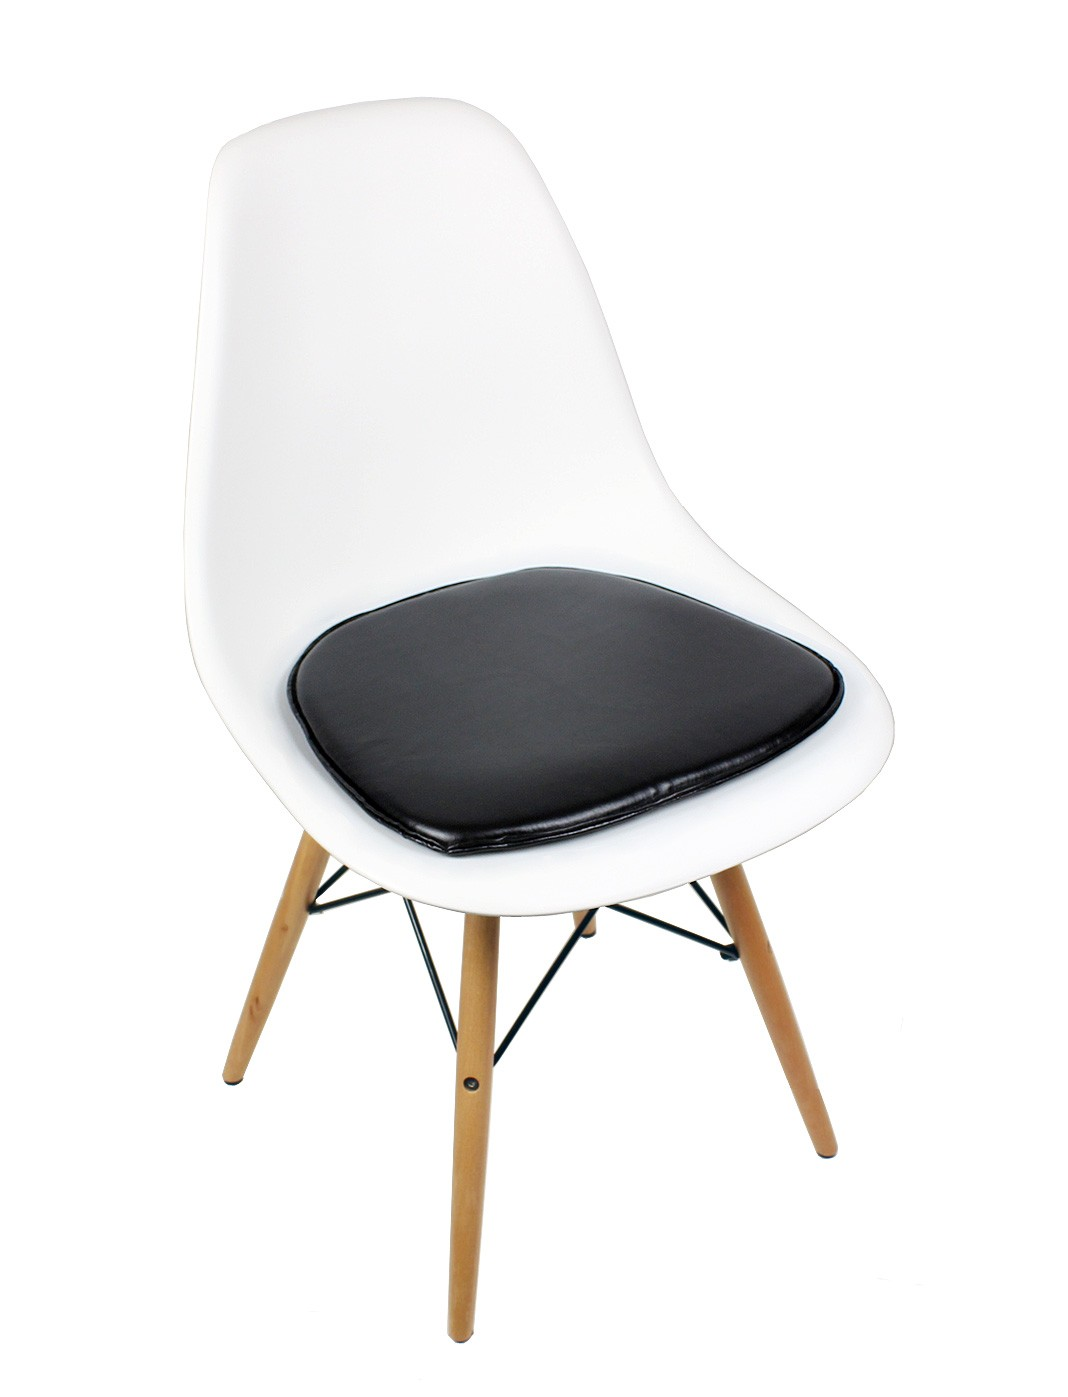 Superieur DSW Molded White Plastic Dining Shell Chair With Cushion